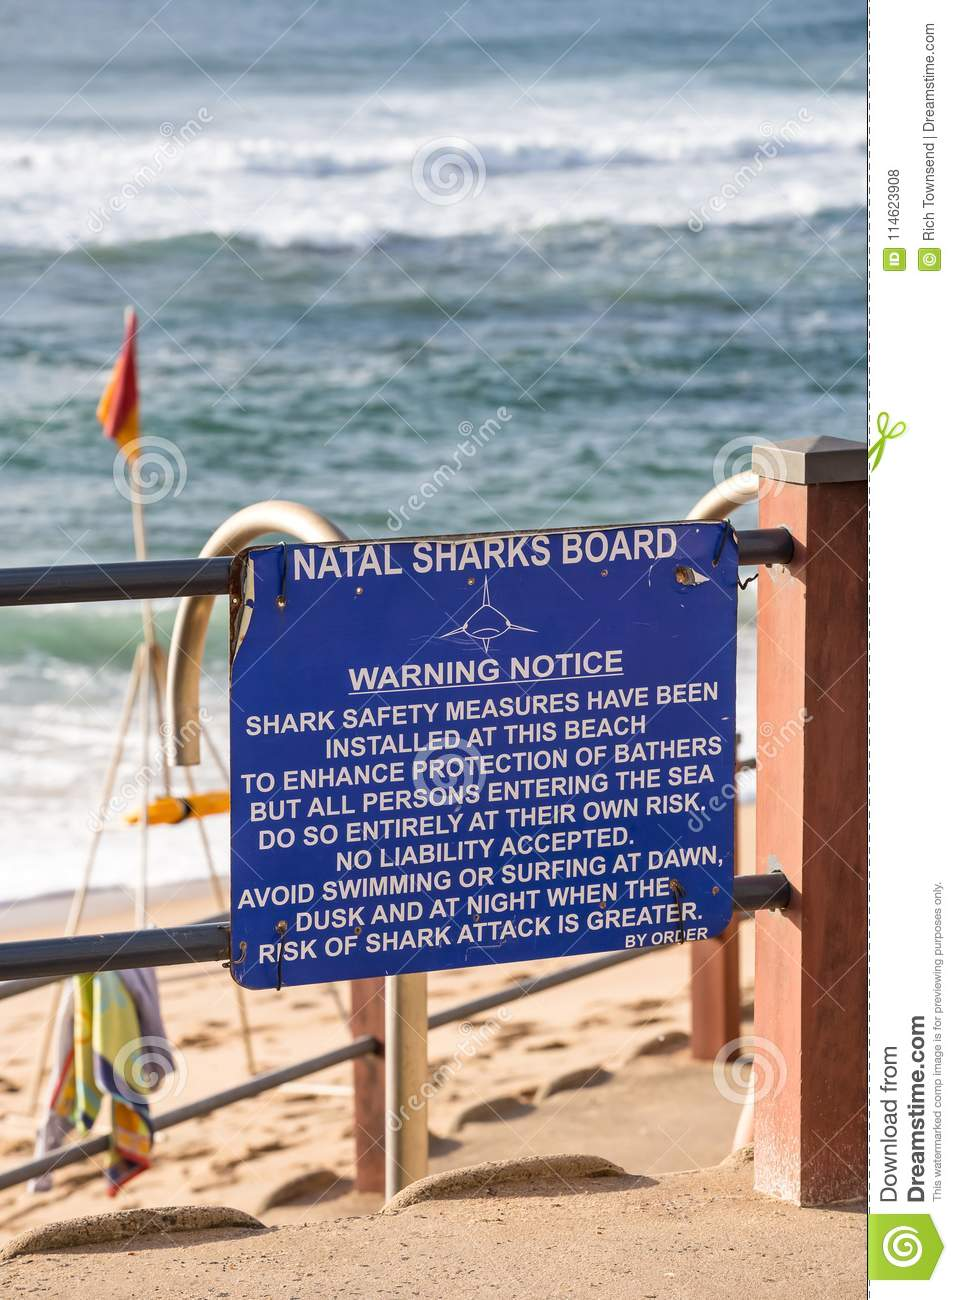 Shark protection notice on beachfront.